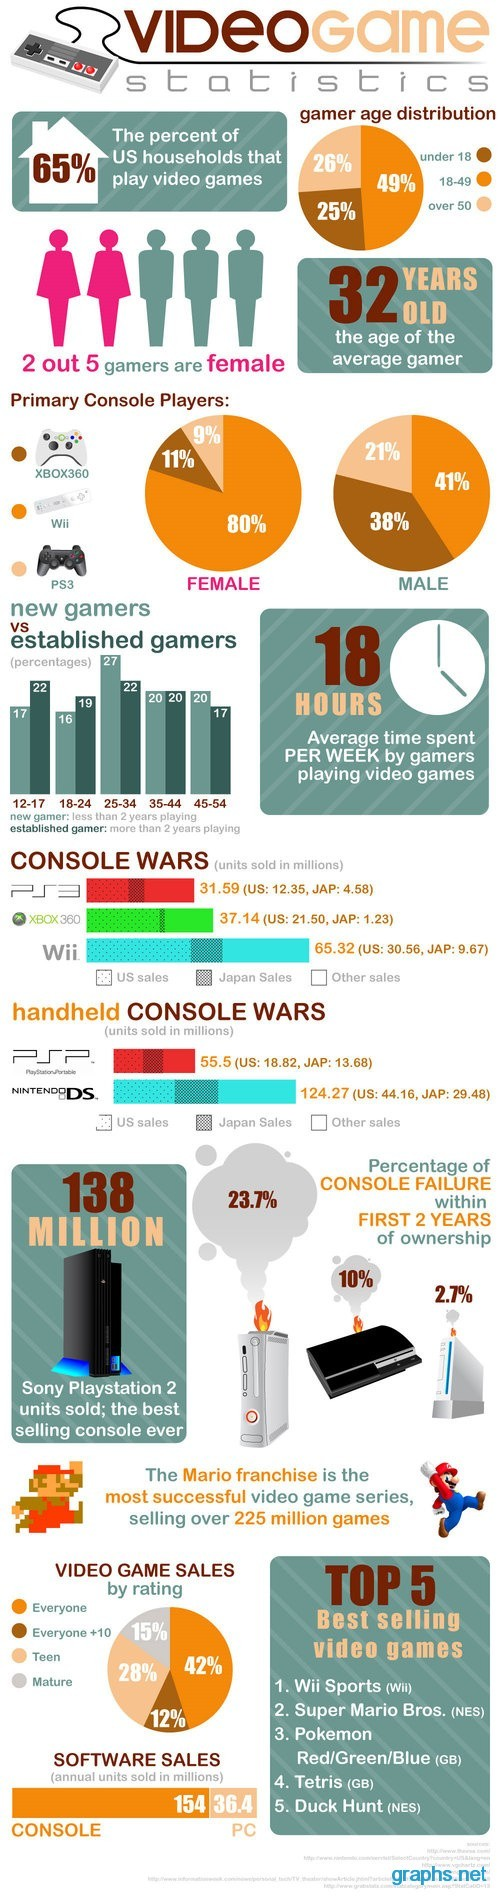 Facts and Statistics About Video Games